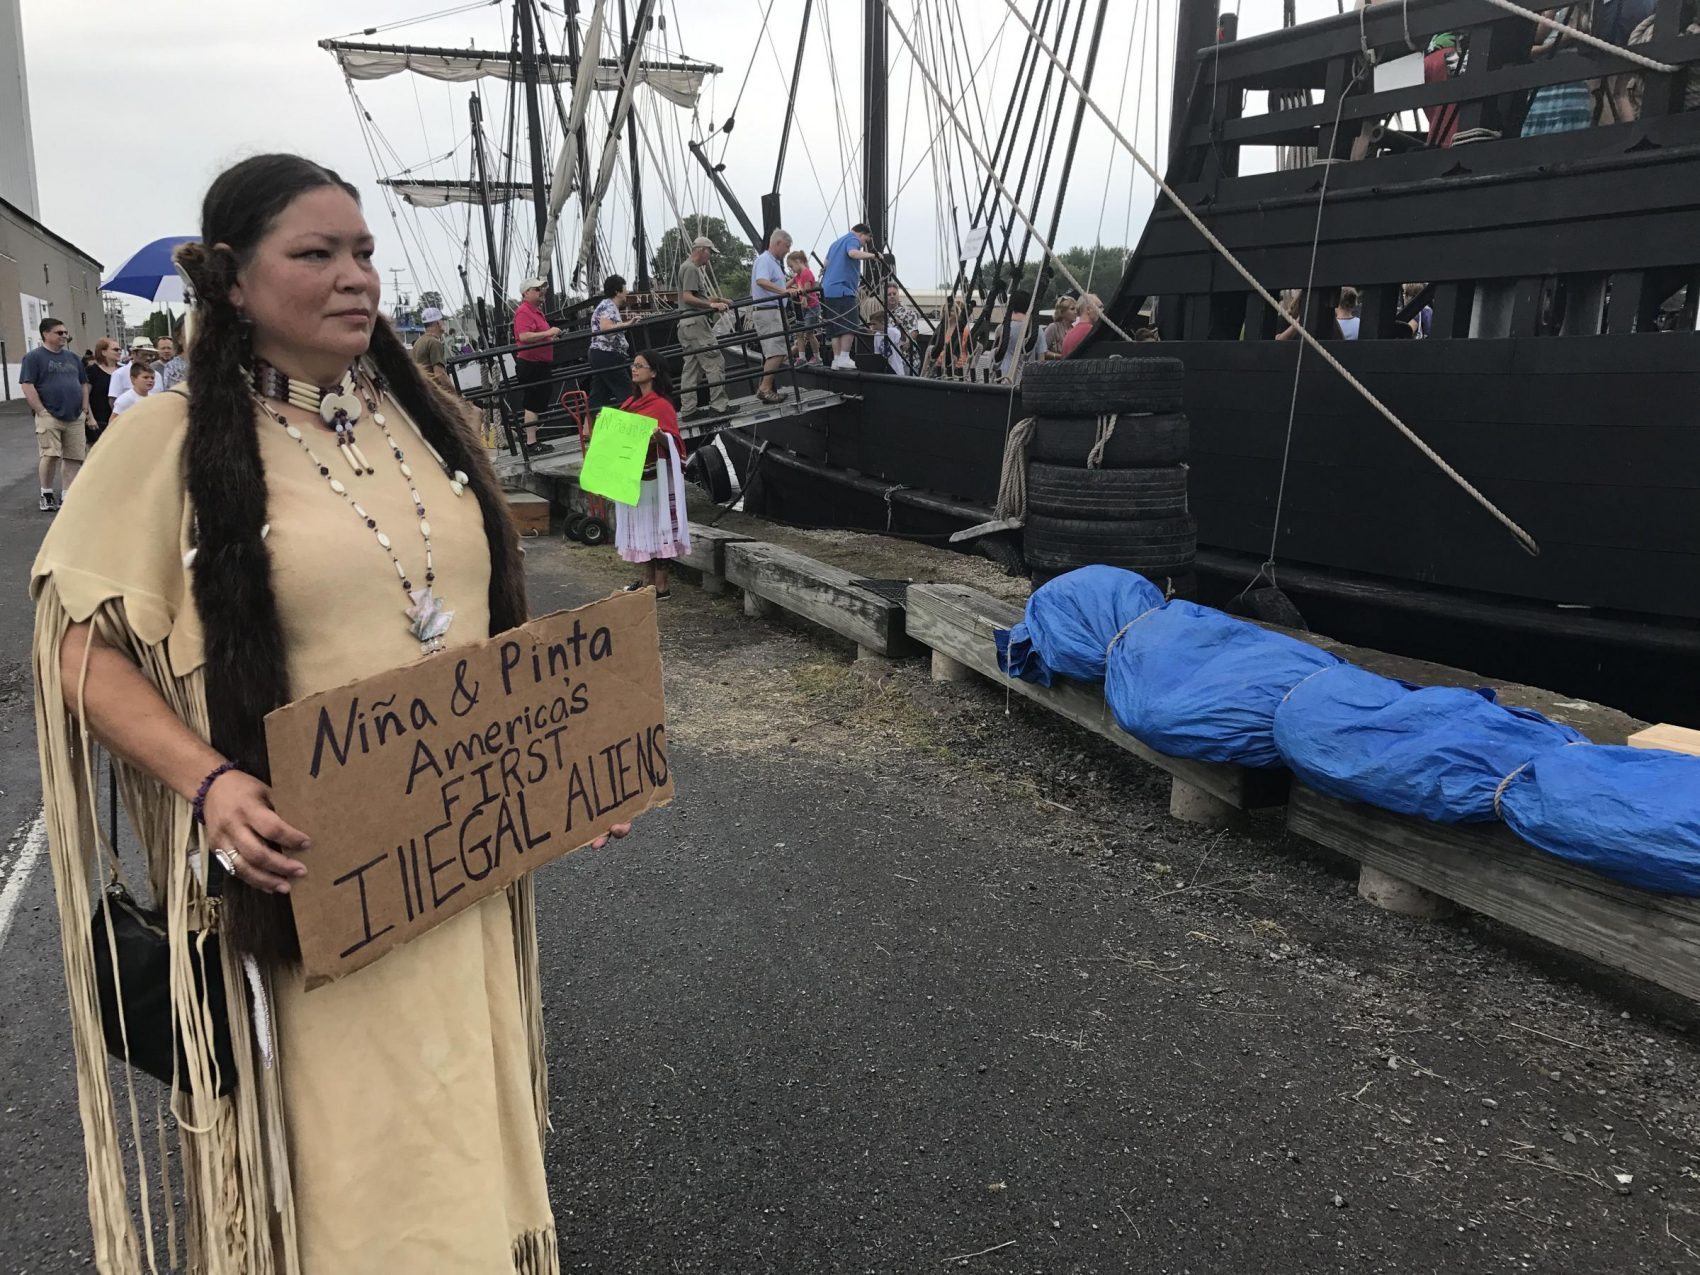 Renee Roman Ose, a descendent of the Oklahoma Cheyenne, came to the Oswego Harbor Saturday to protest the two Christopher Columbus ships and educate people on about the genocide and terror it brought to the original inhabitants of the Americas. (Payne Horning/WRVO)